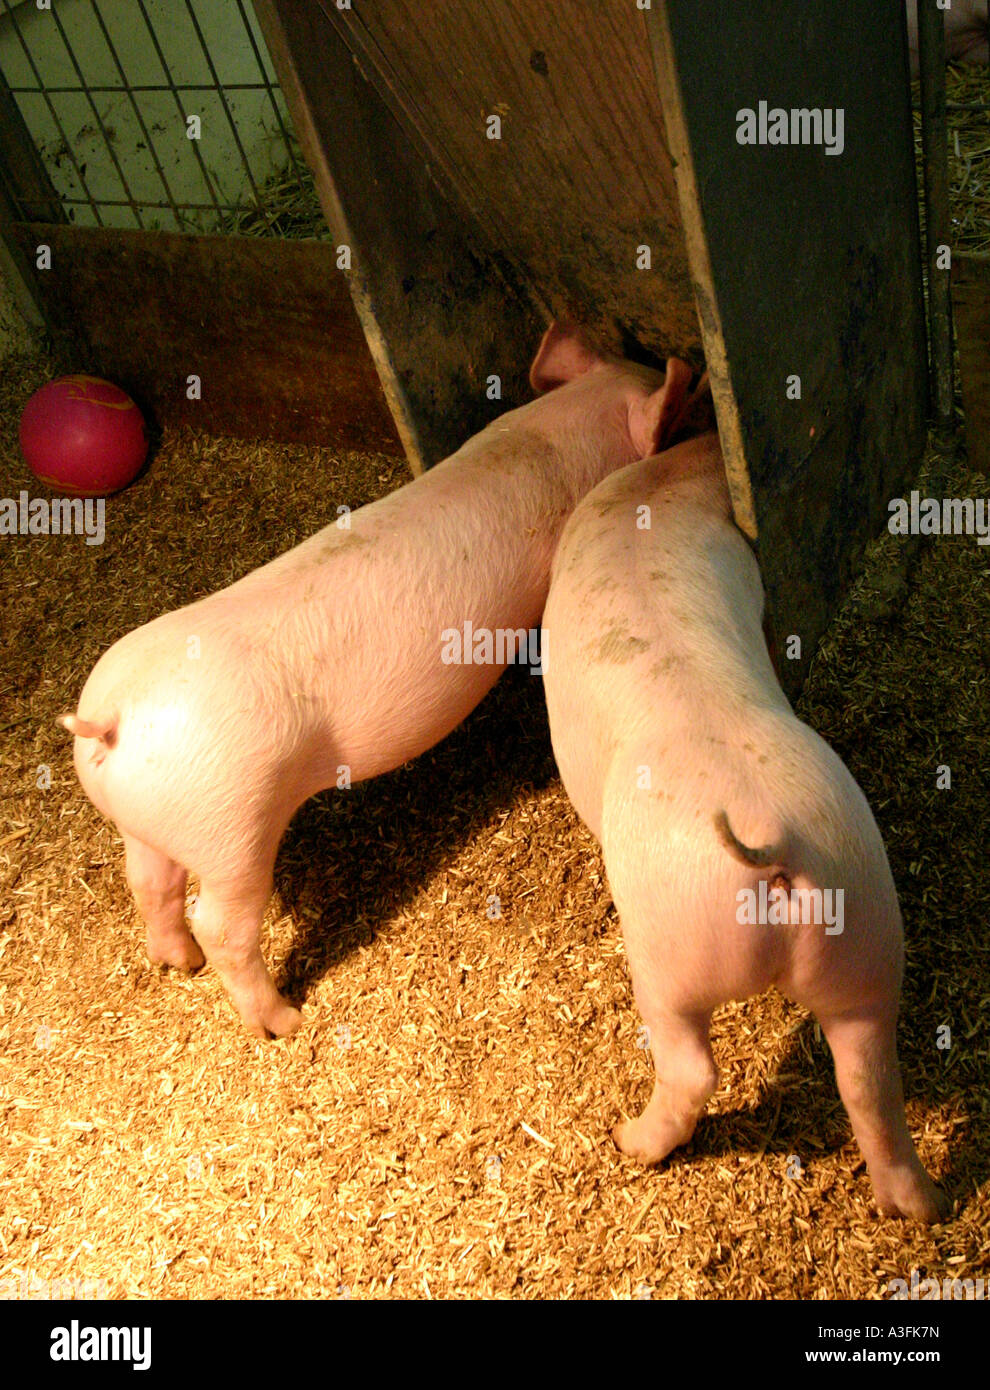 TWO PIGS WITH THEIR BUMS STUCK OUT EATING WAGGING THEIR TAILS  VERTICAL BAPDB9045 - Stock Image